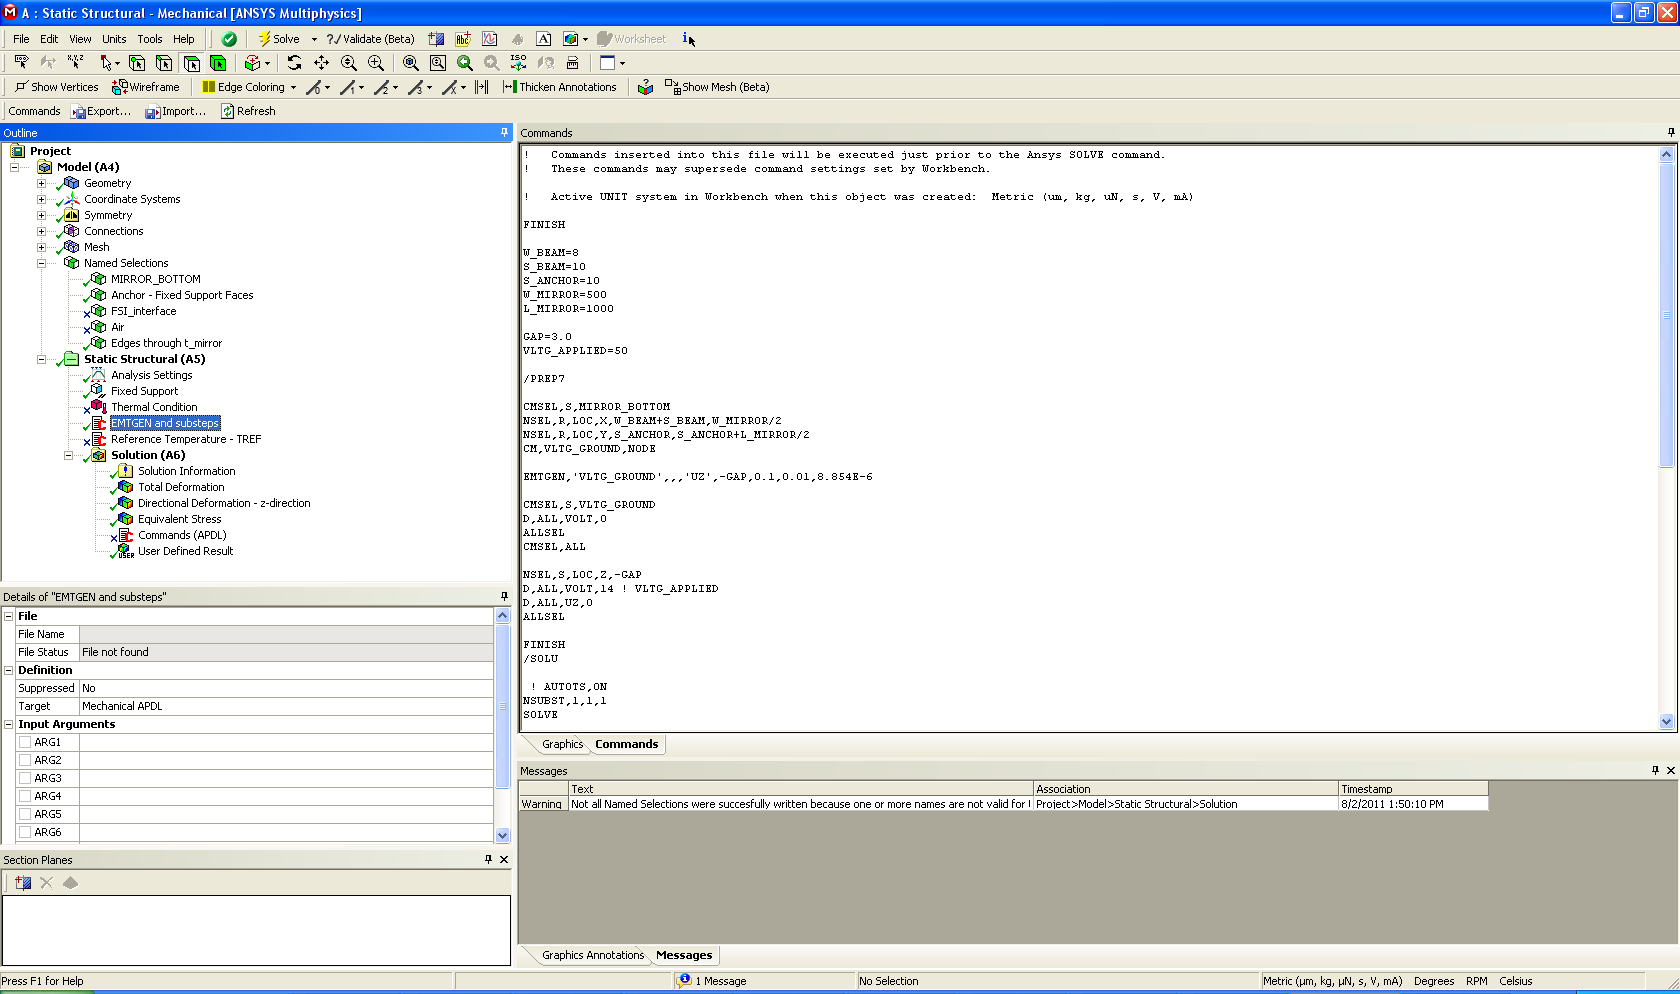 TRANS126 EMT Elements EMTGEN Macro TRANS126 elements are generated using the EMTGEN macro. Requires MAPDL commands; entered by inserting a Command Snippet in the Static Structural Analysis.